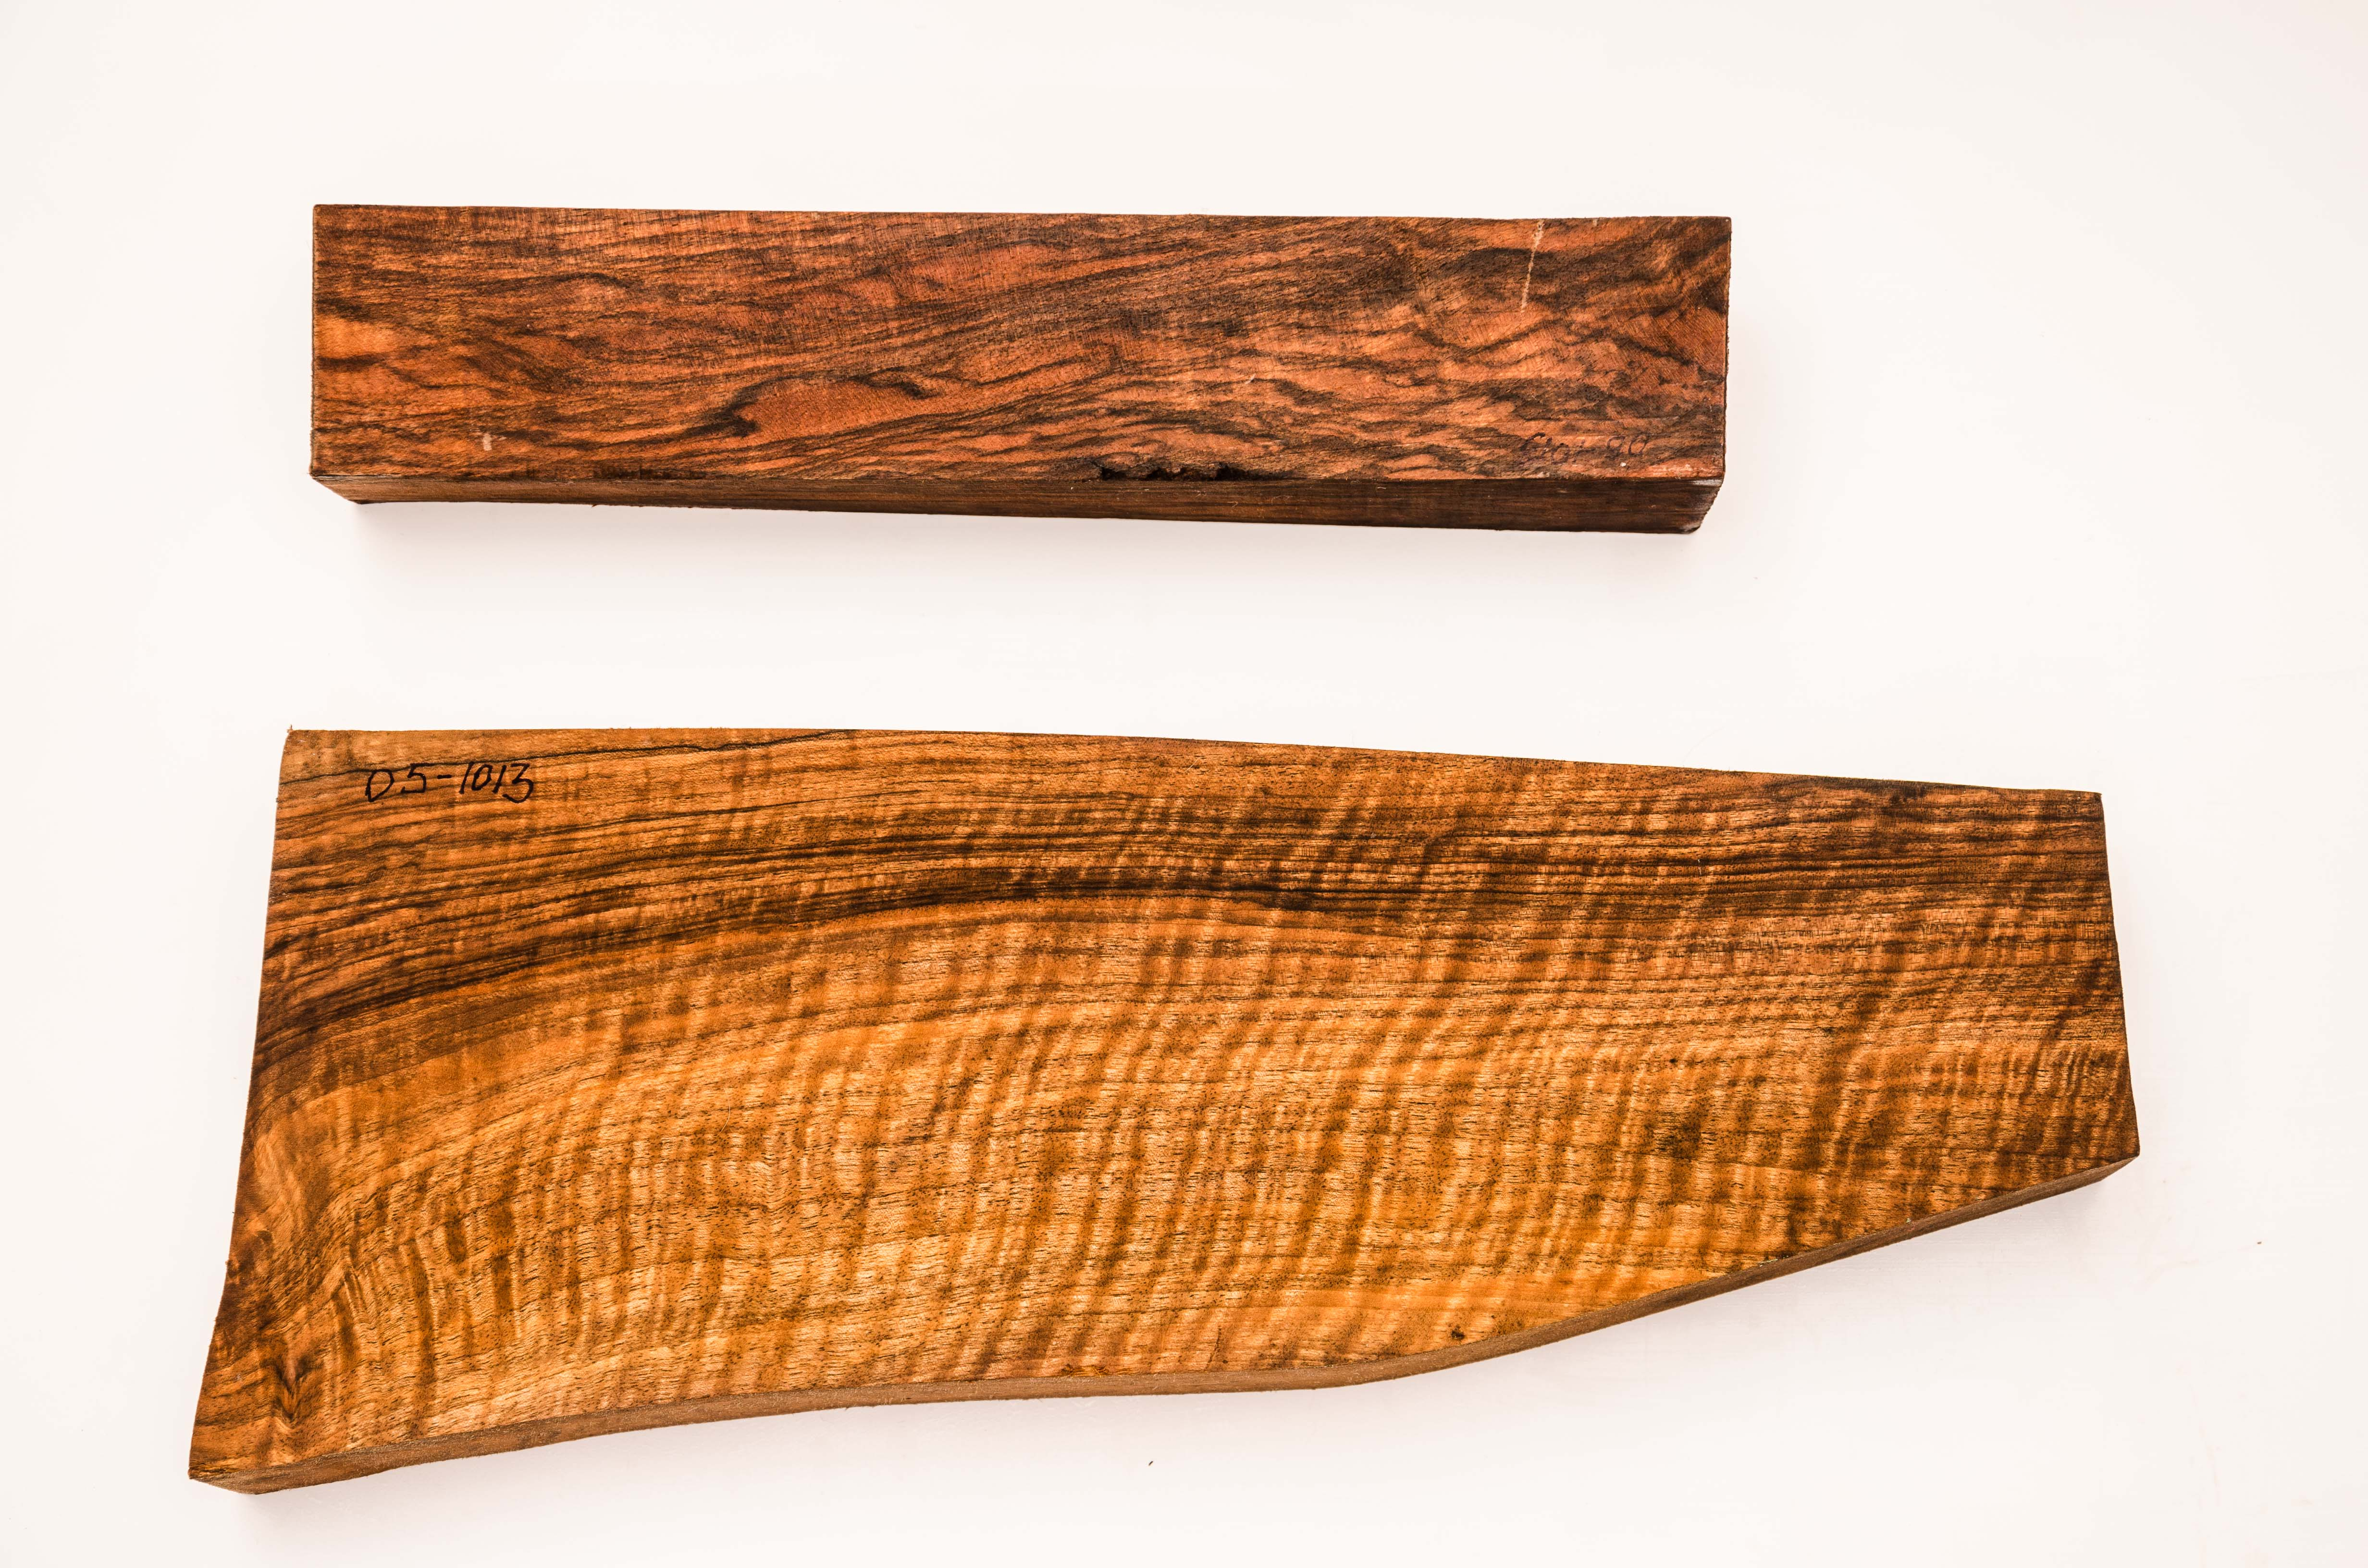 walnut_stock_blanks_for_guns_and_rifles-0587